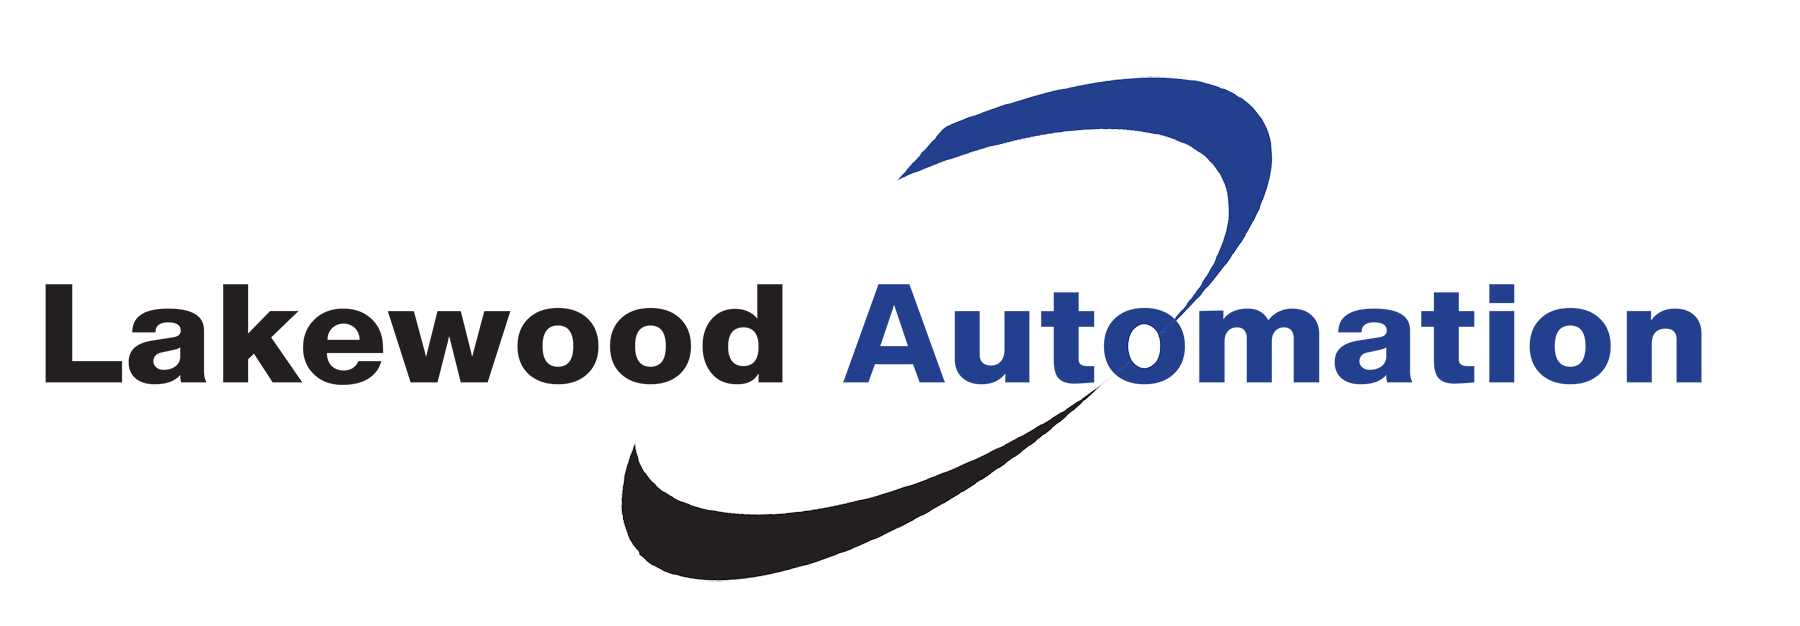 Lakewood Automation